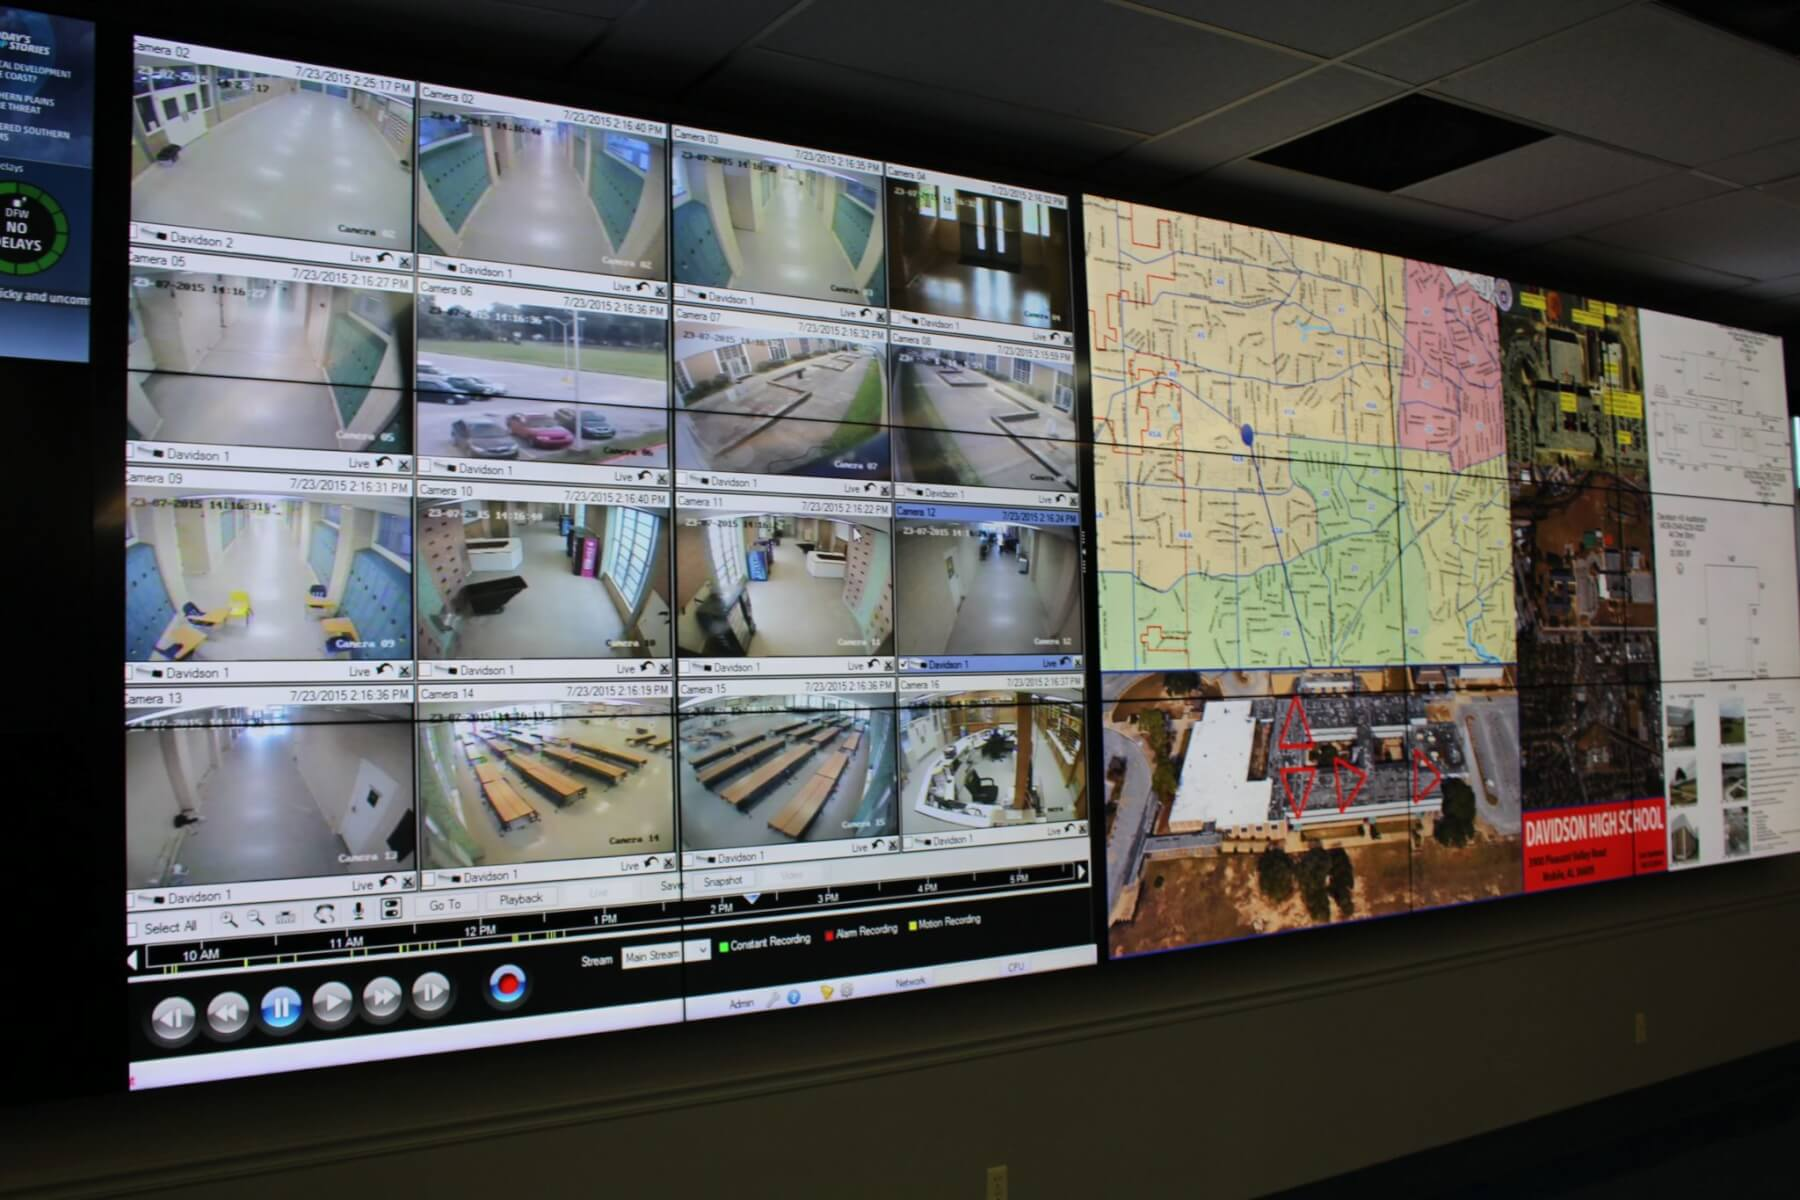 Gulf Shores police ask residents to register security cams